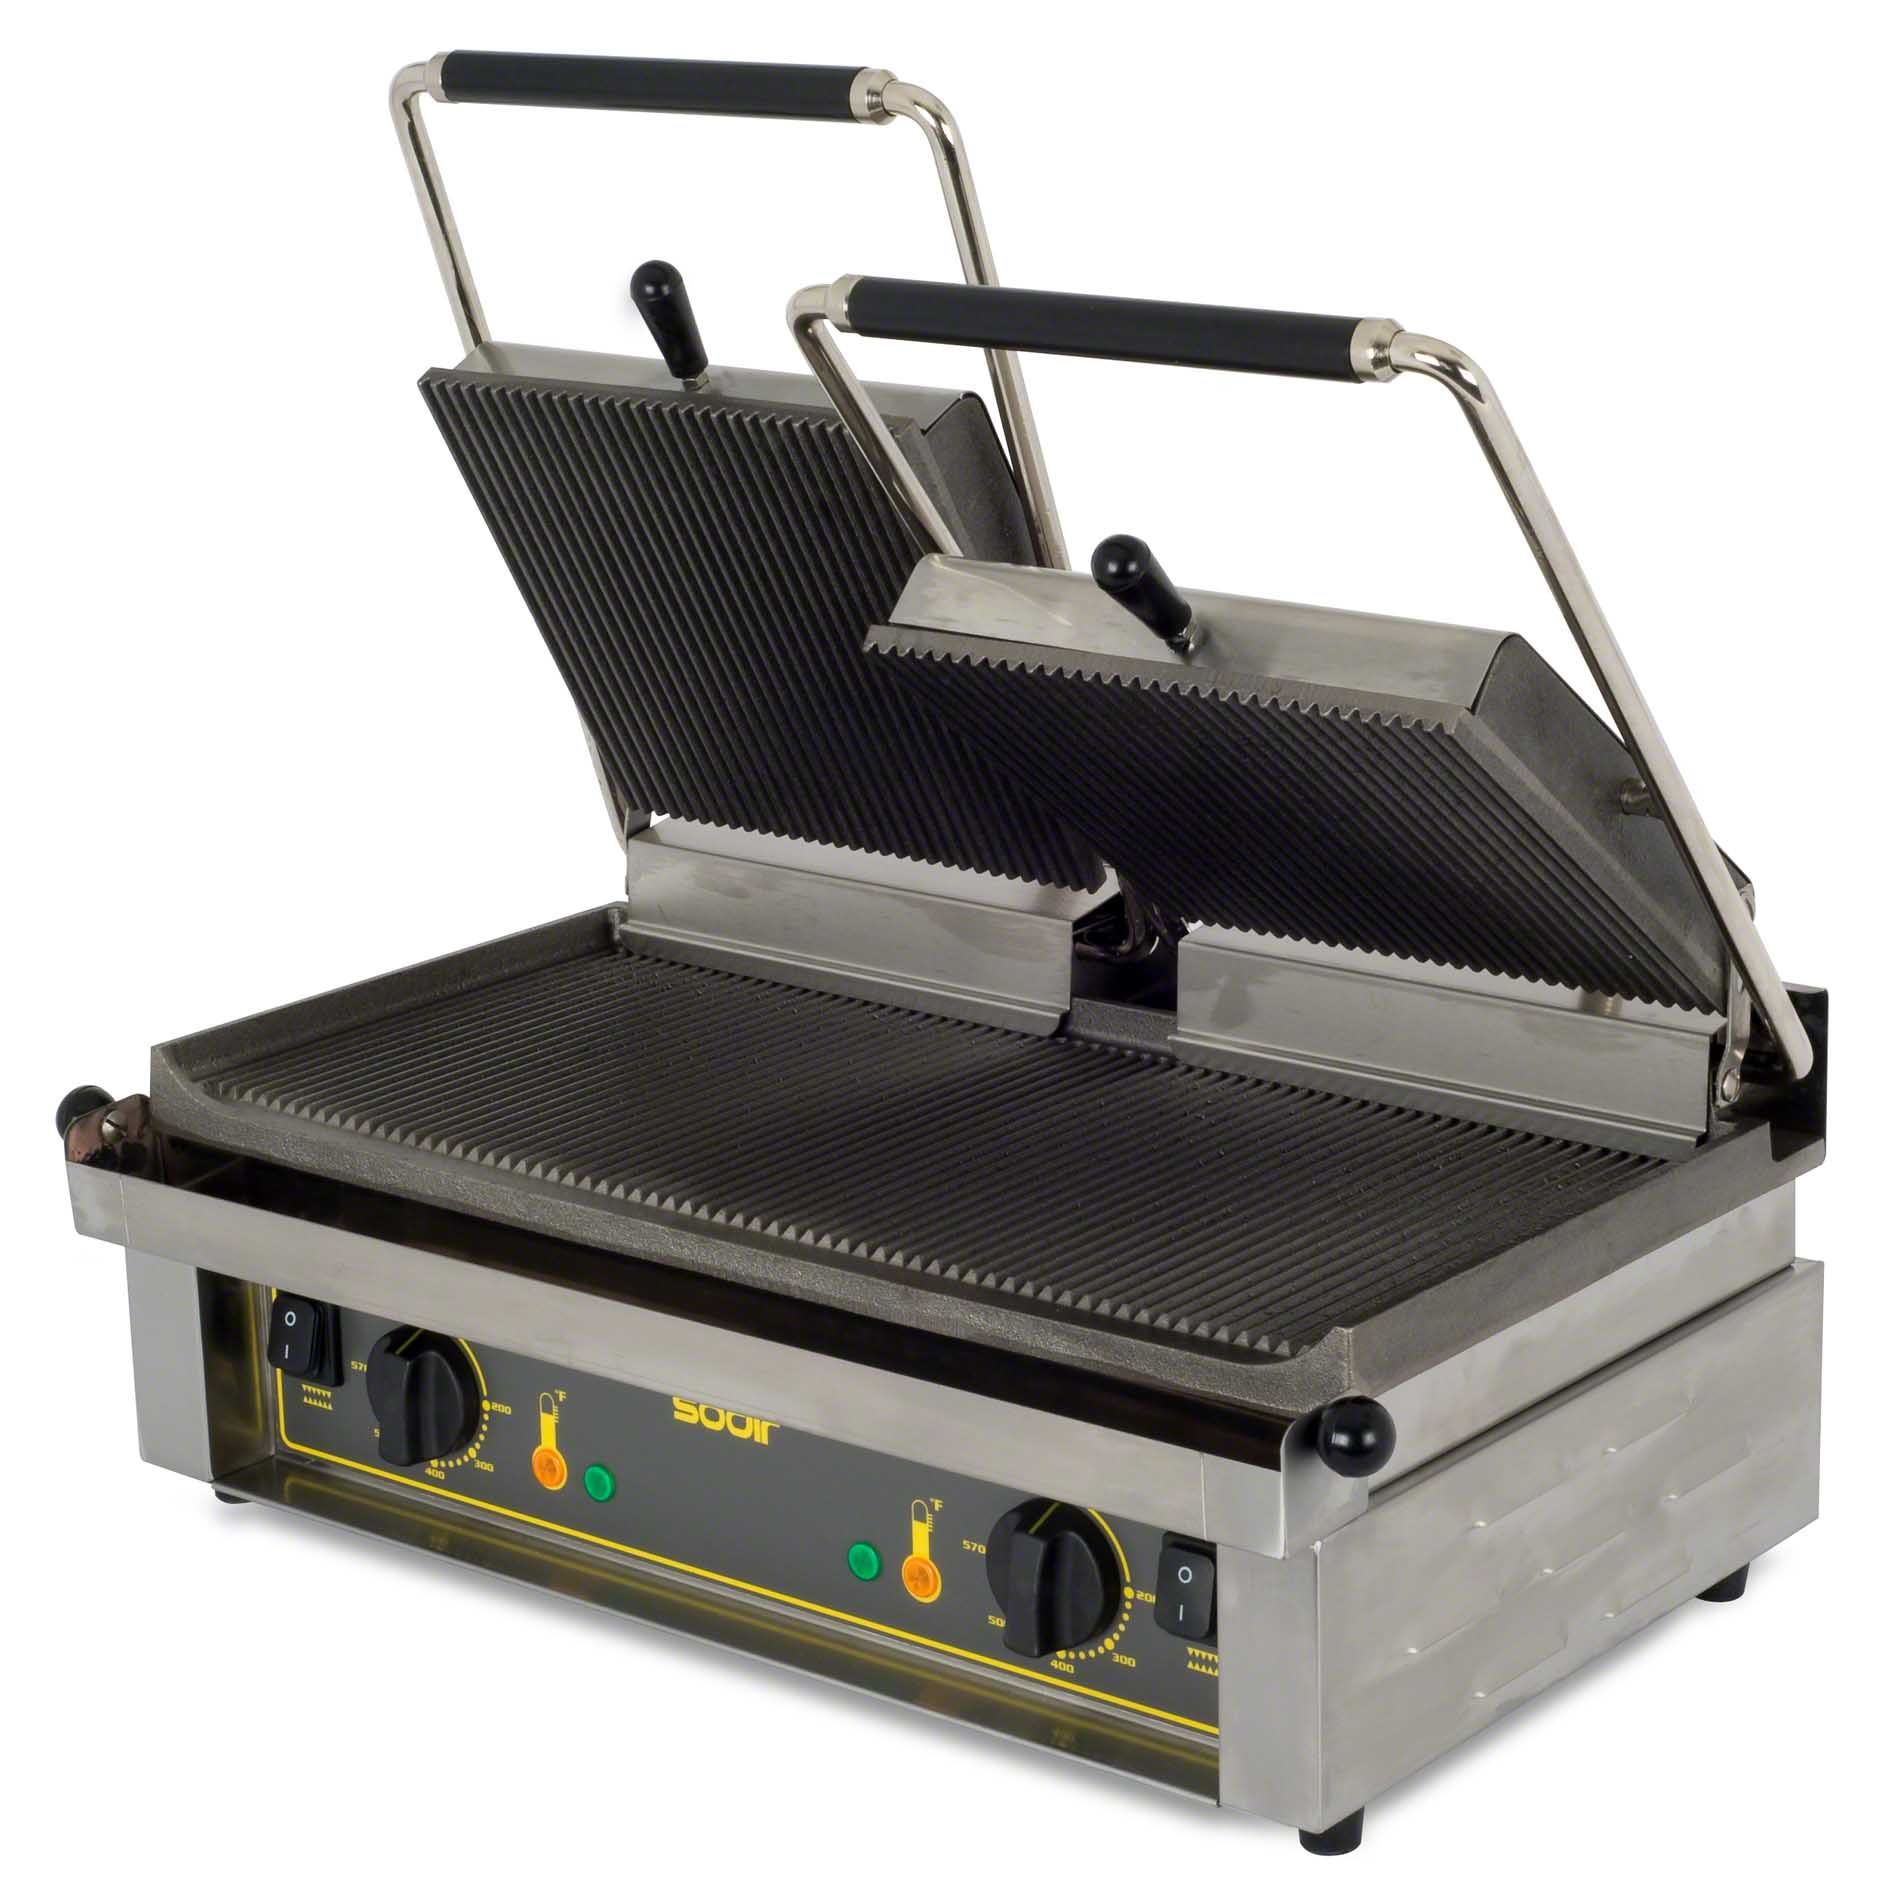 ... MAJESTIC, 24-Inch Countertop Double Electric Panini Grill, cULus, NSF